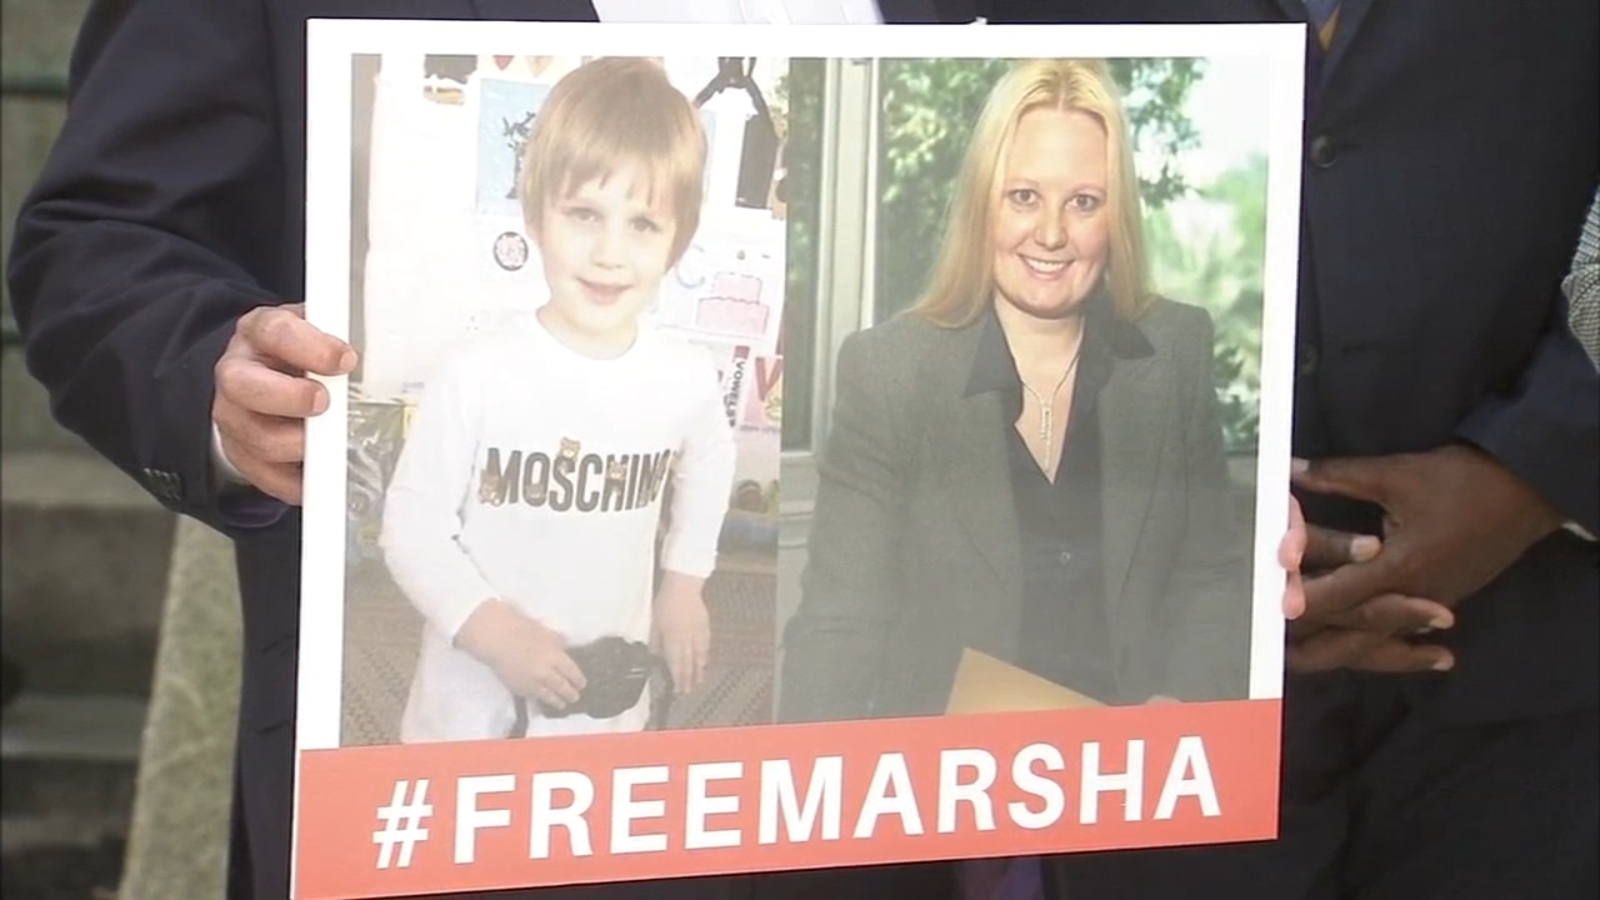 Friends of Bryn Mawr being held in Kuwait press for her release